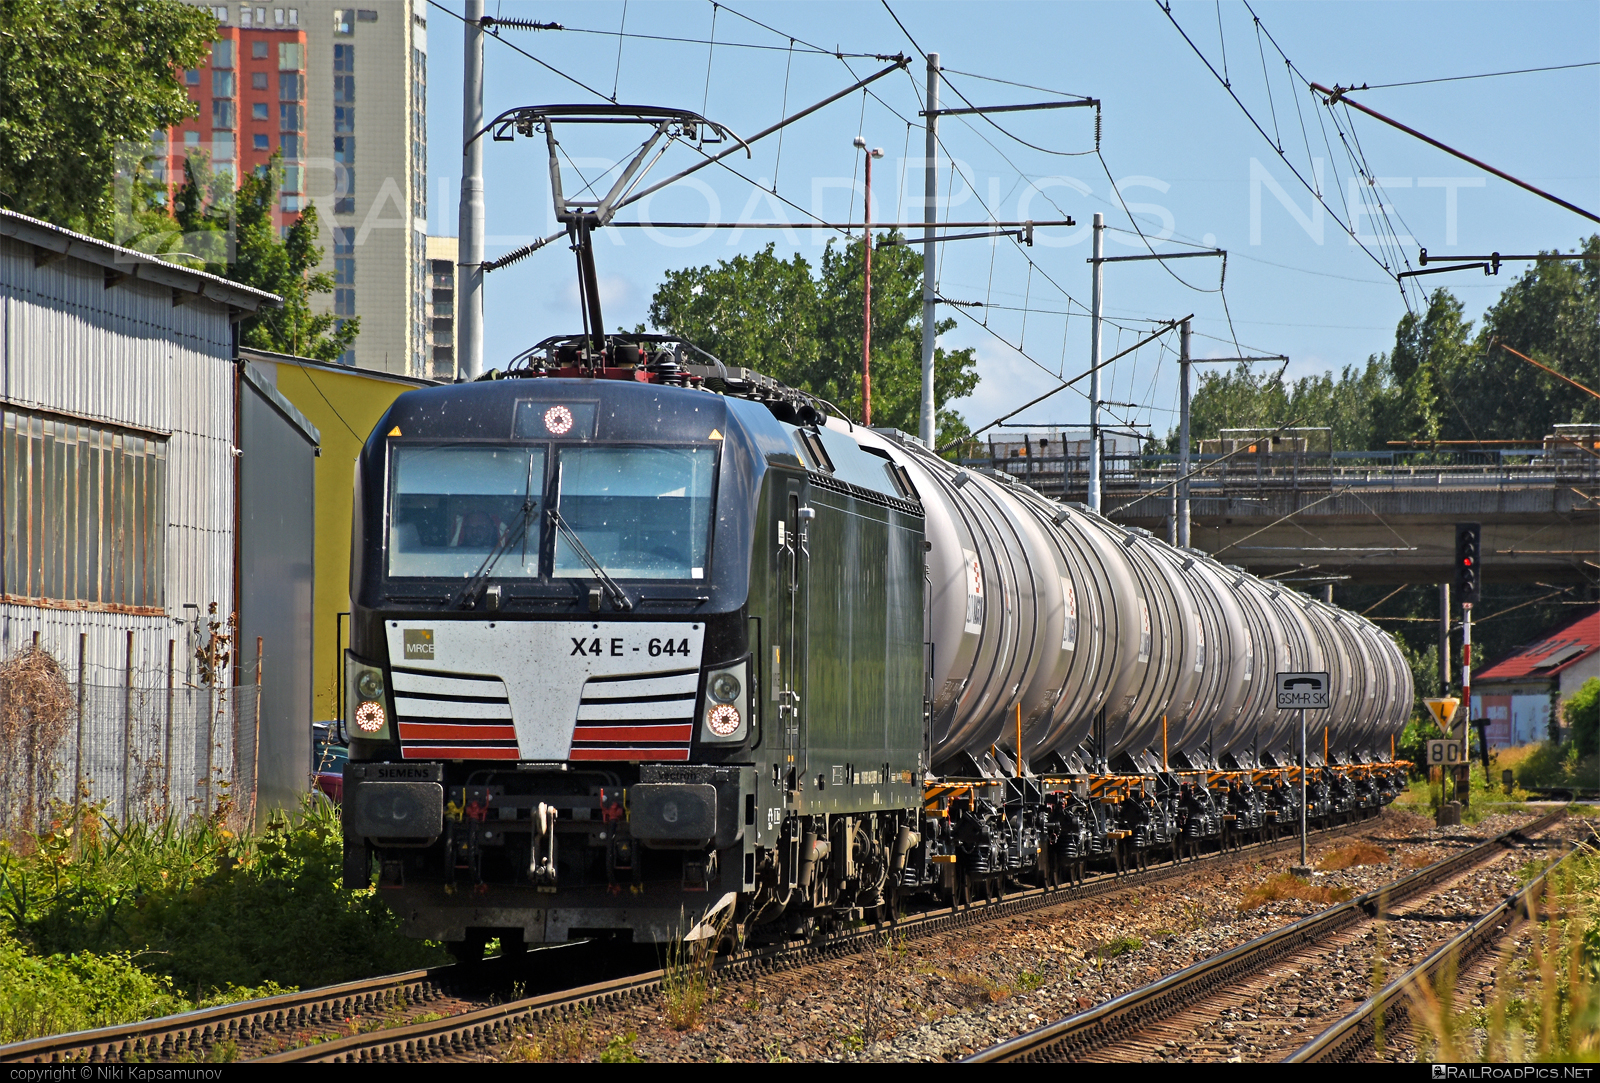 Siemens Vectron MS - 193 644-2 operated by Unknown #dispolok #kesselwagen #mitsuirailcapitaleurope #mitsuirailcapitaleuropegmbh #mrce #siemens #siemensvectron #siemensvectronms #slovvagon #tankwagon #vectron #vectronms